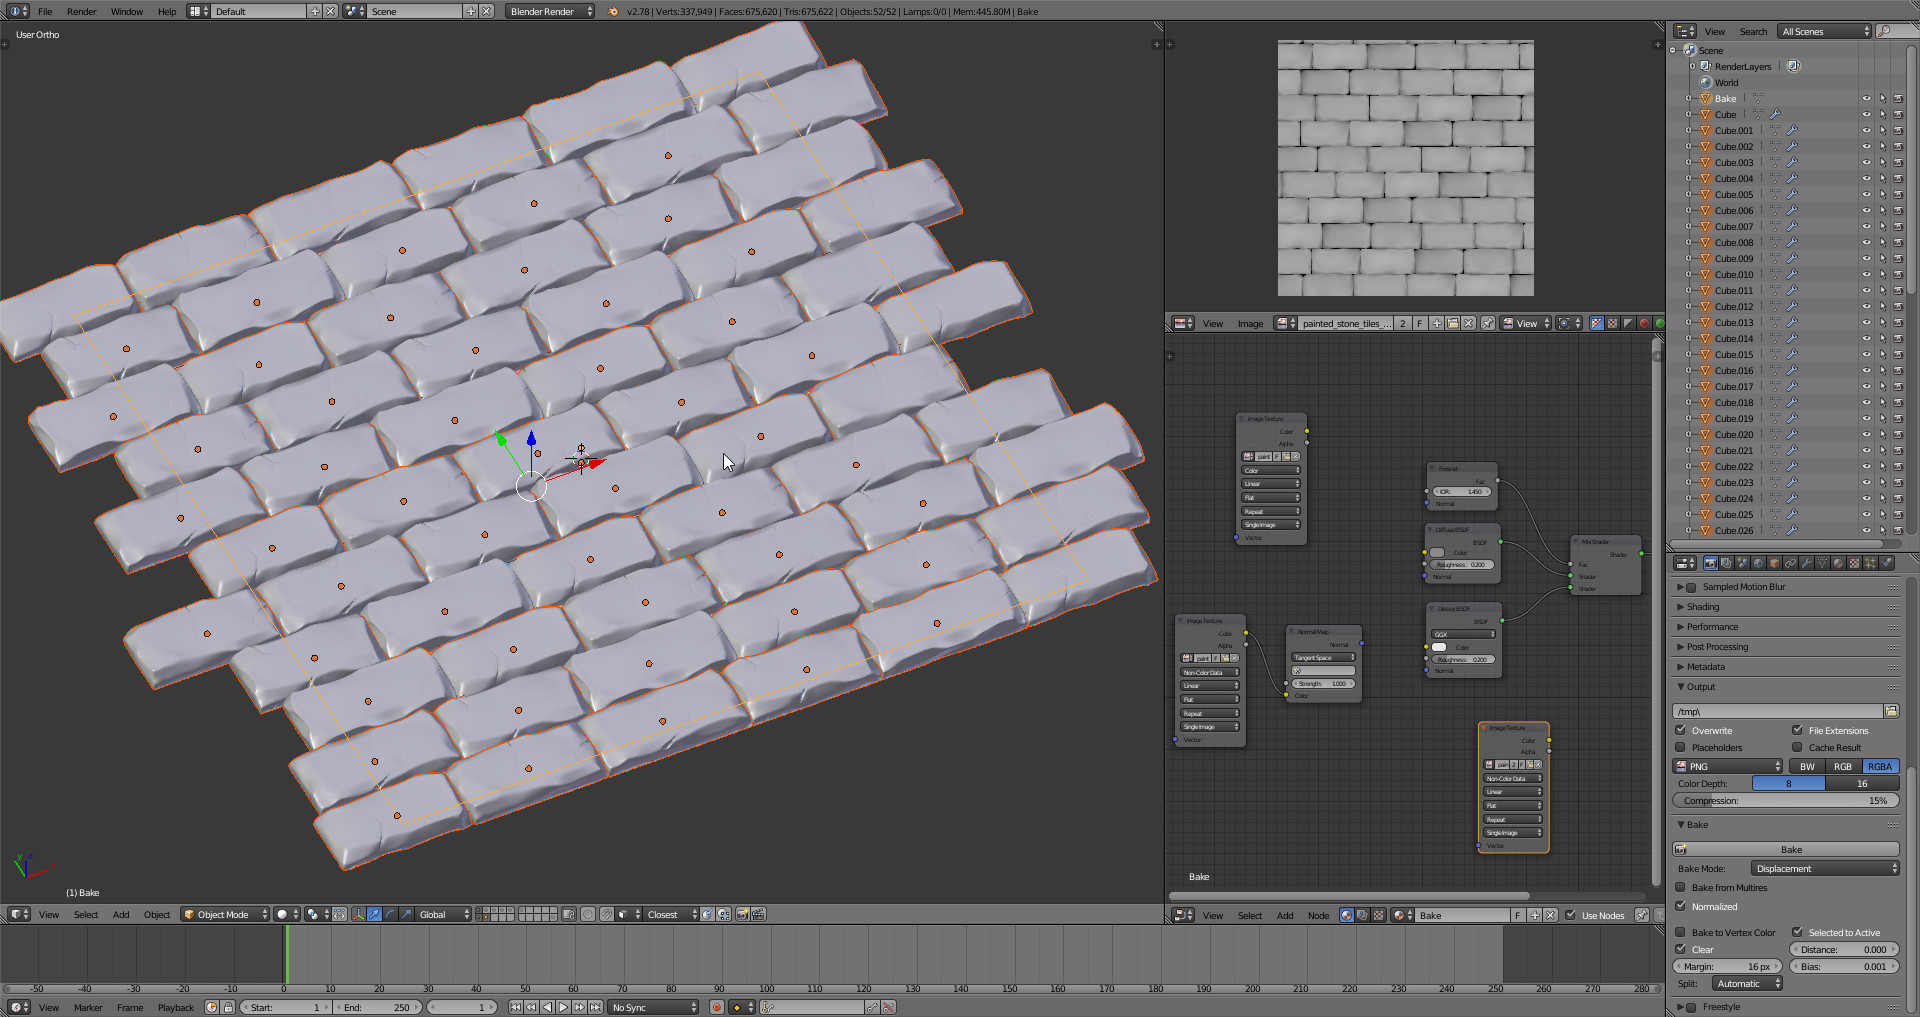 the tiles are baked high-poly 3d models